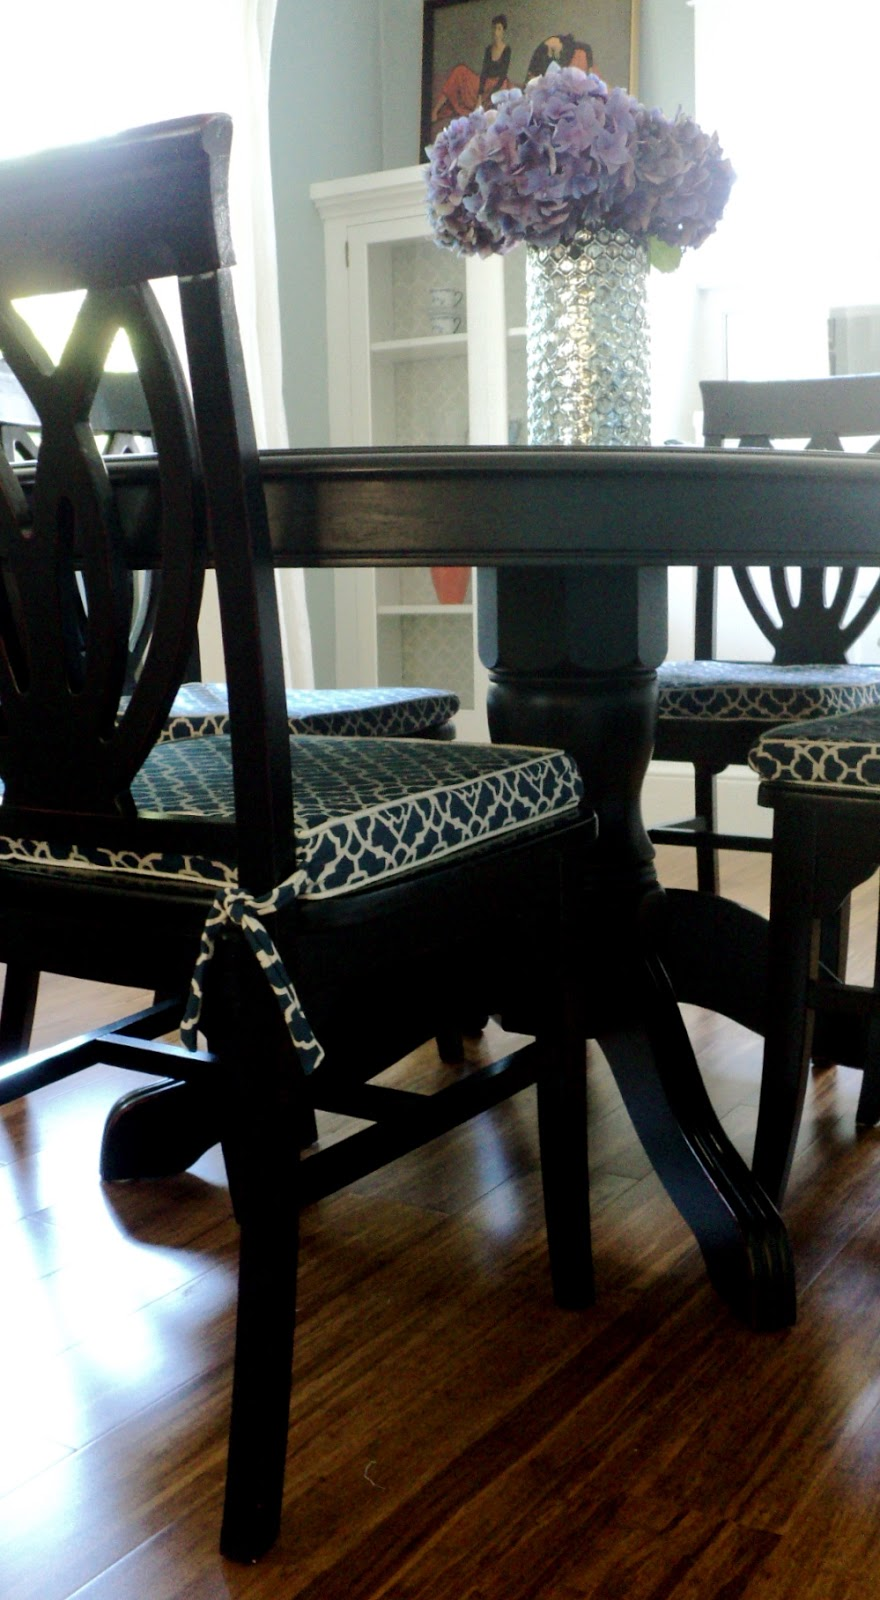 Dining room chair cushion slipcover tutorial living in the rain garden - Cushioned dining room chairs ...